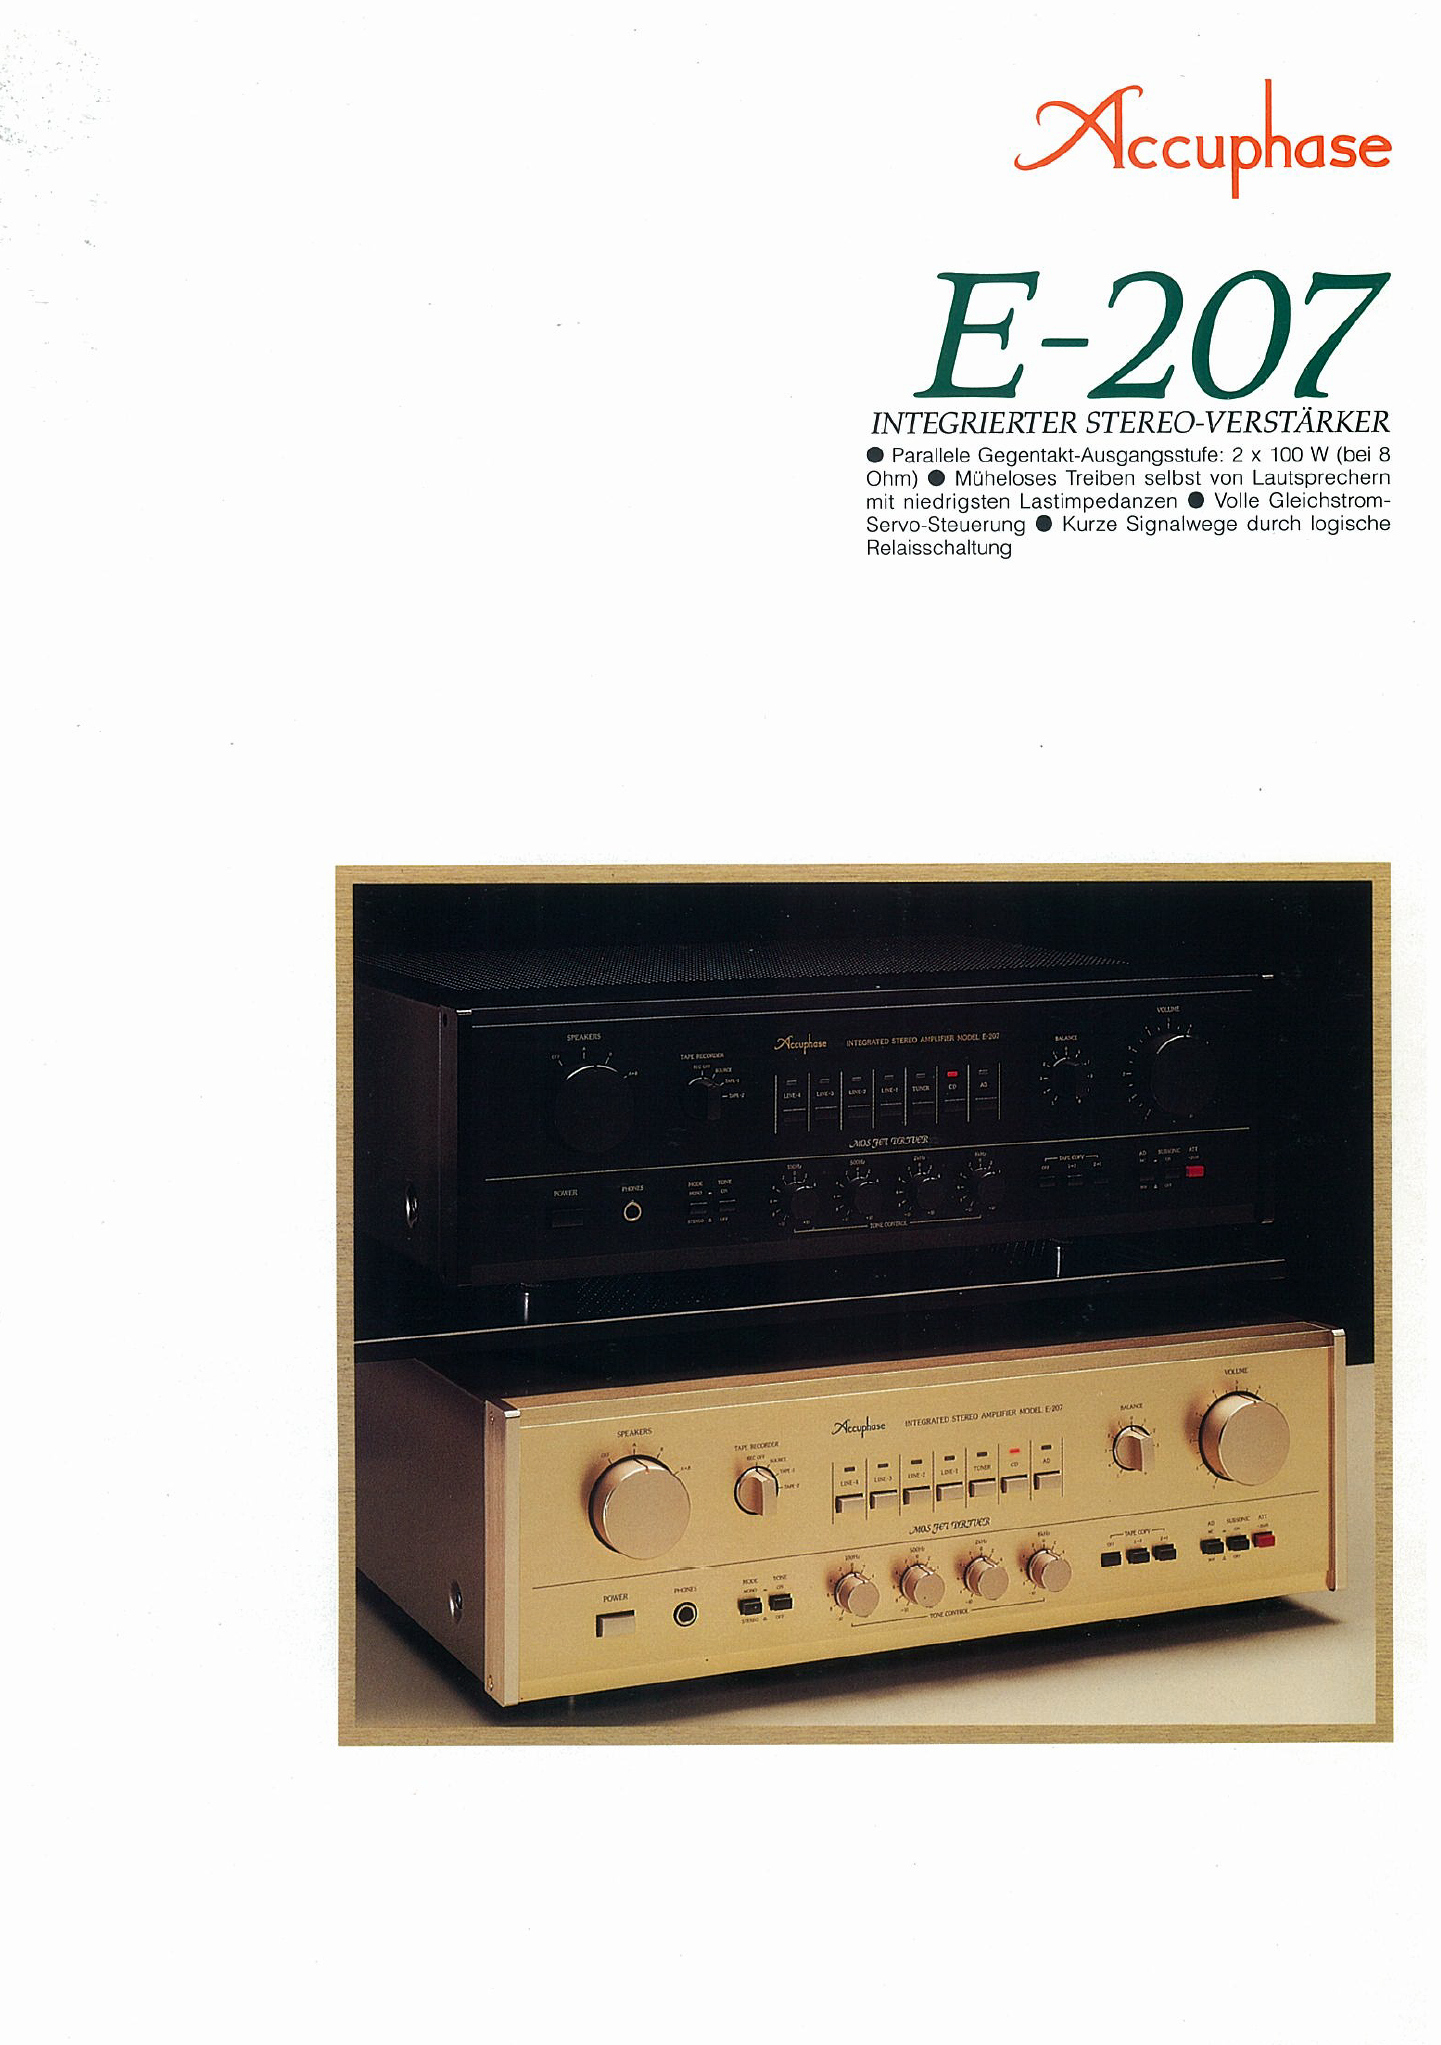 Accuphase E-207-Prospekt-1.jpg